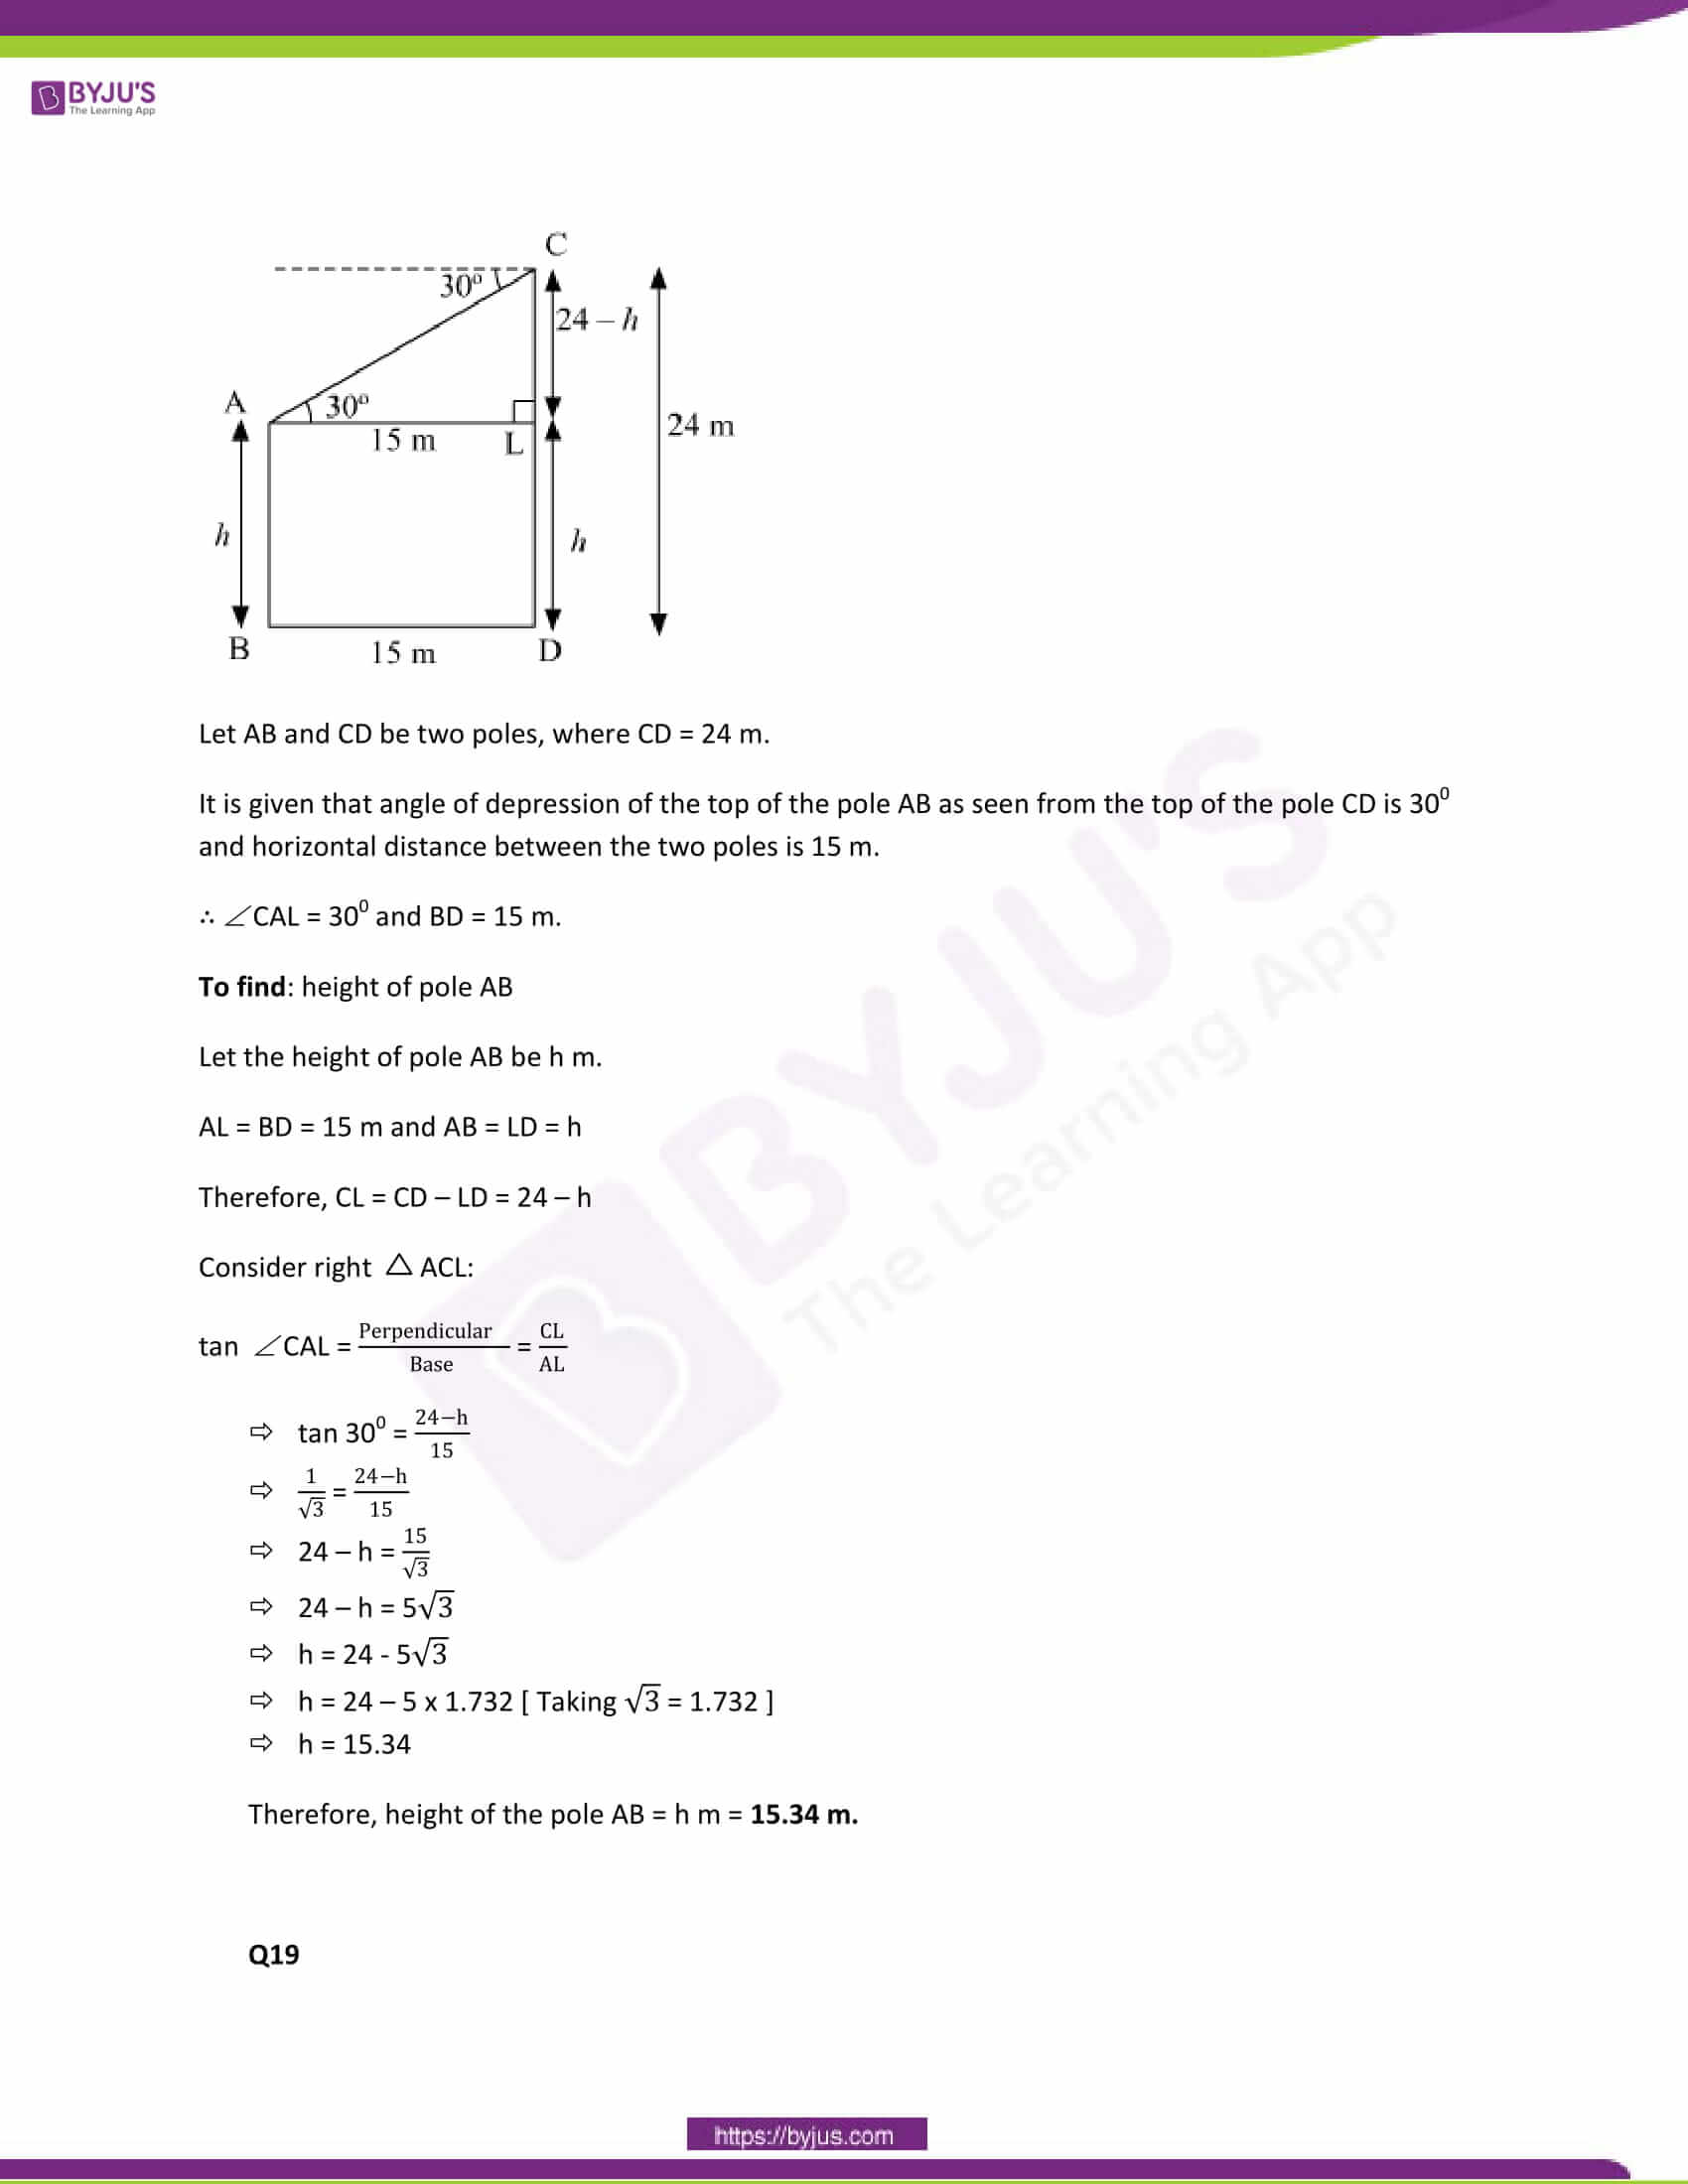 CBSE Class 10 Maths Papers Solution 2013 10